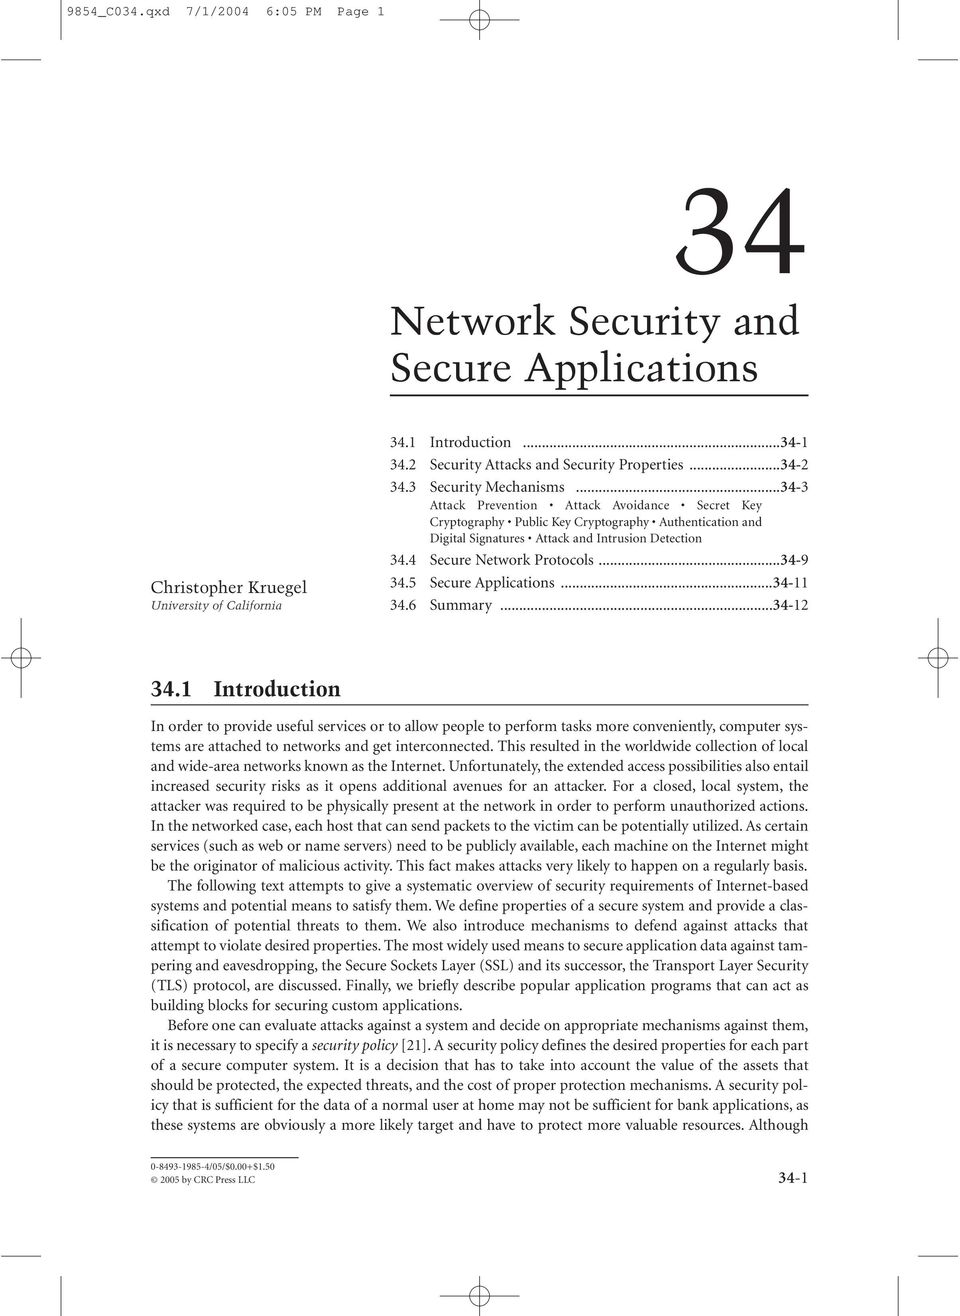 4 Secure Network Protocols...34-9 34.5 Secure Applications...34-11 34.6 Summary...34-12 34.